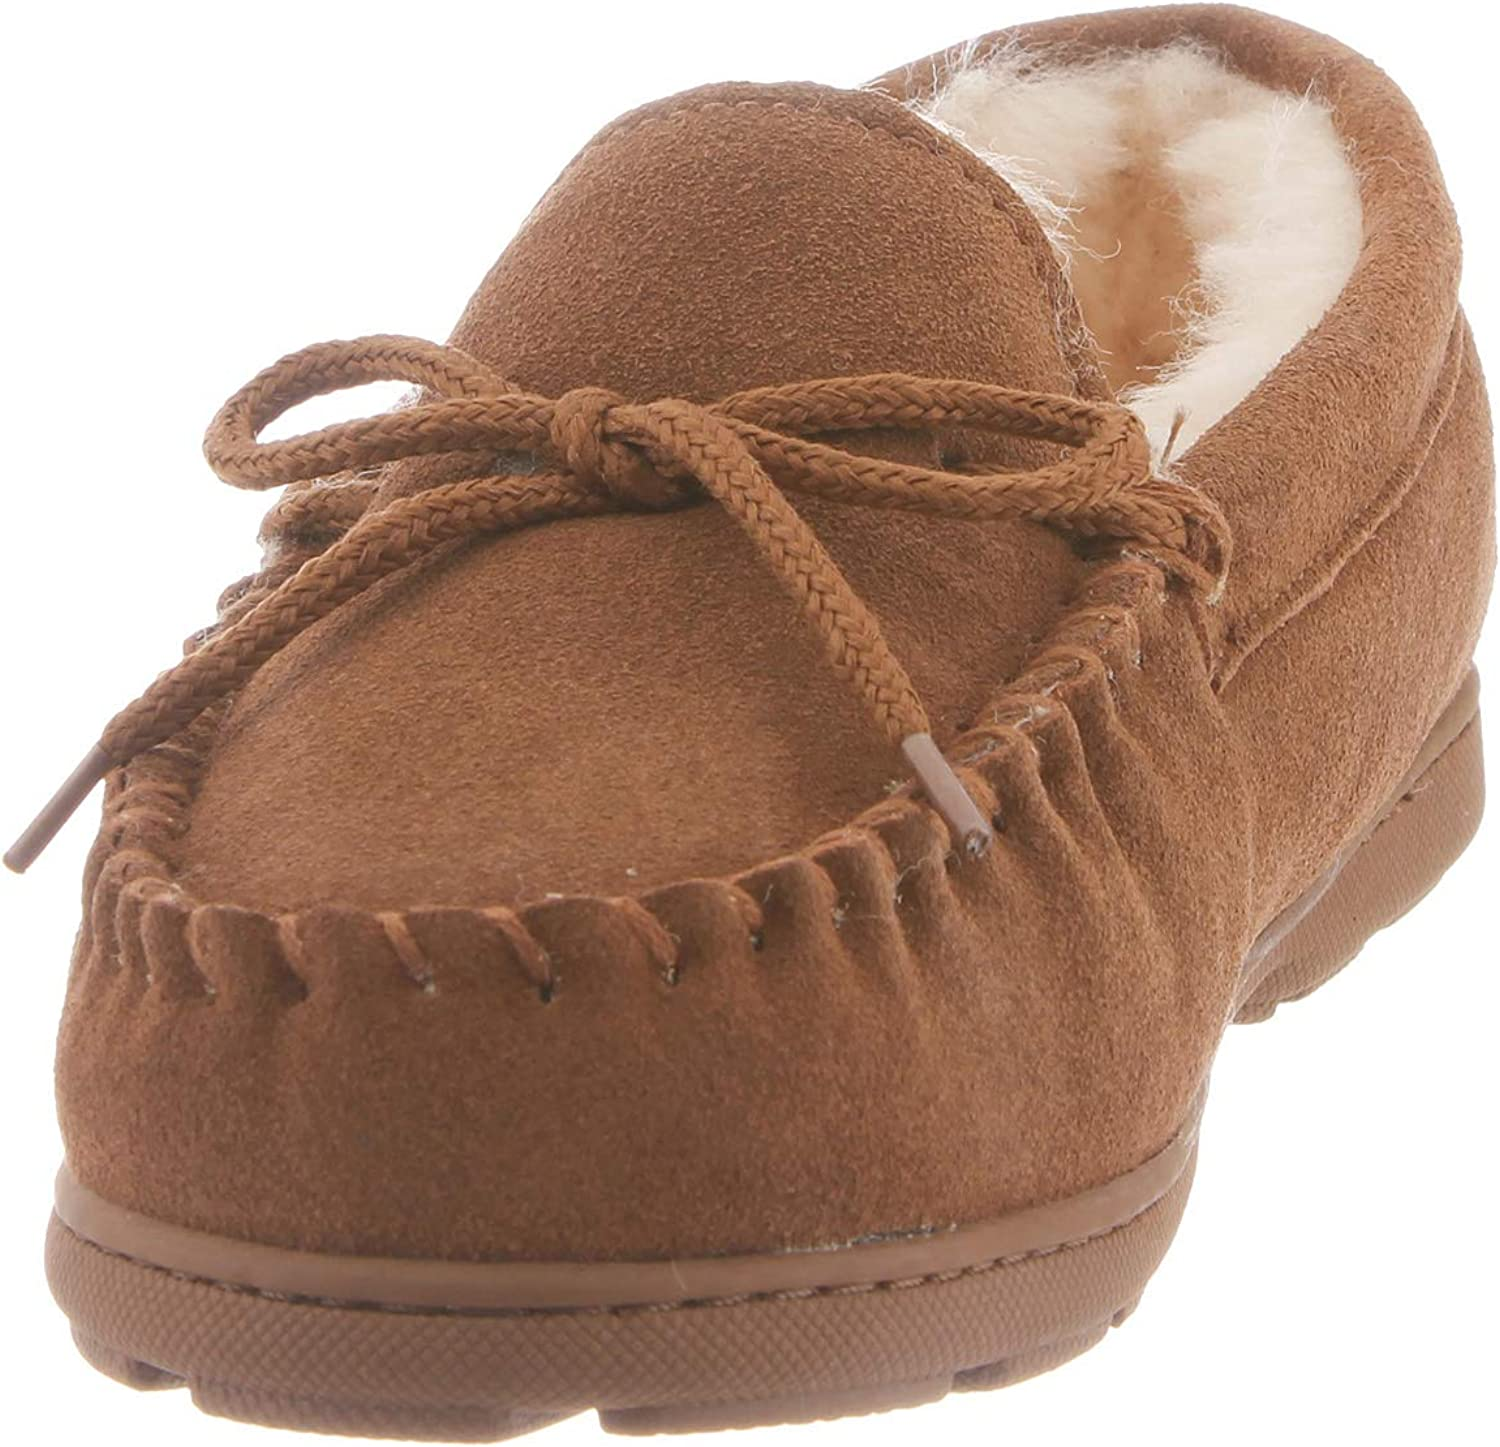 Bearpaw Womens Mindy Moccasin Slippers